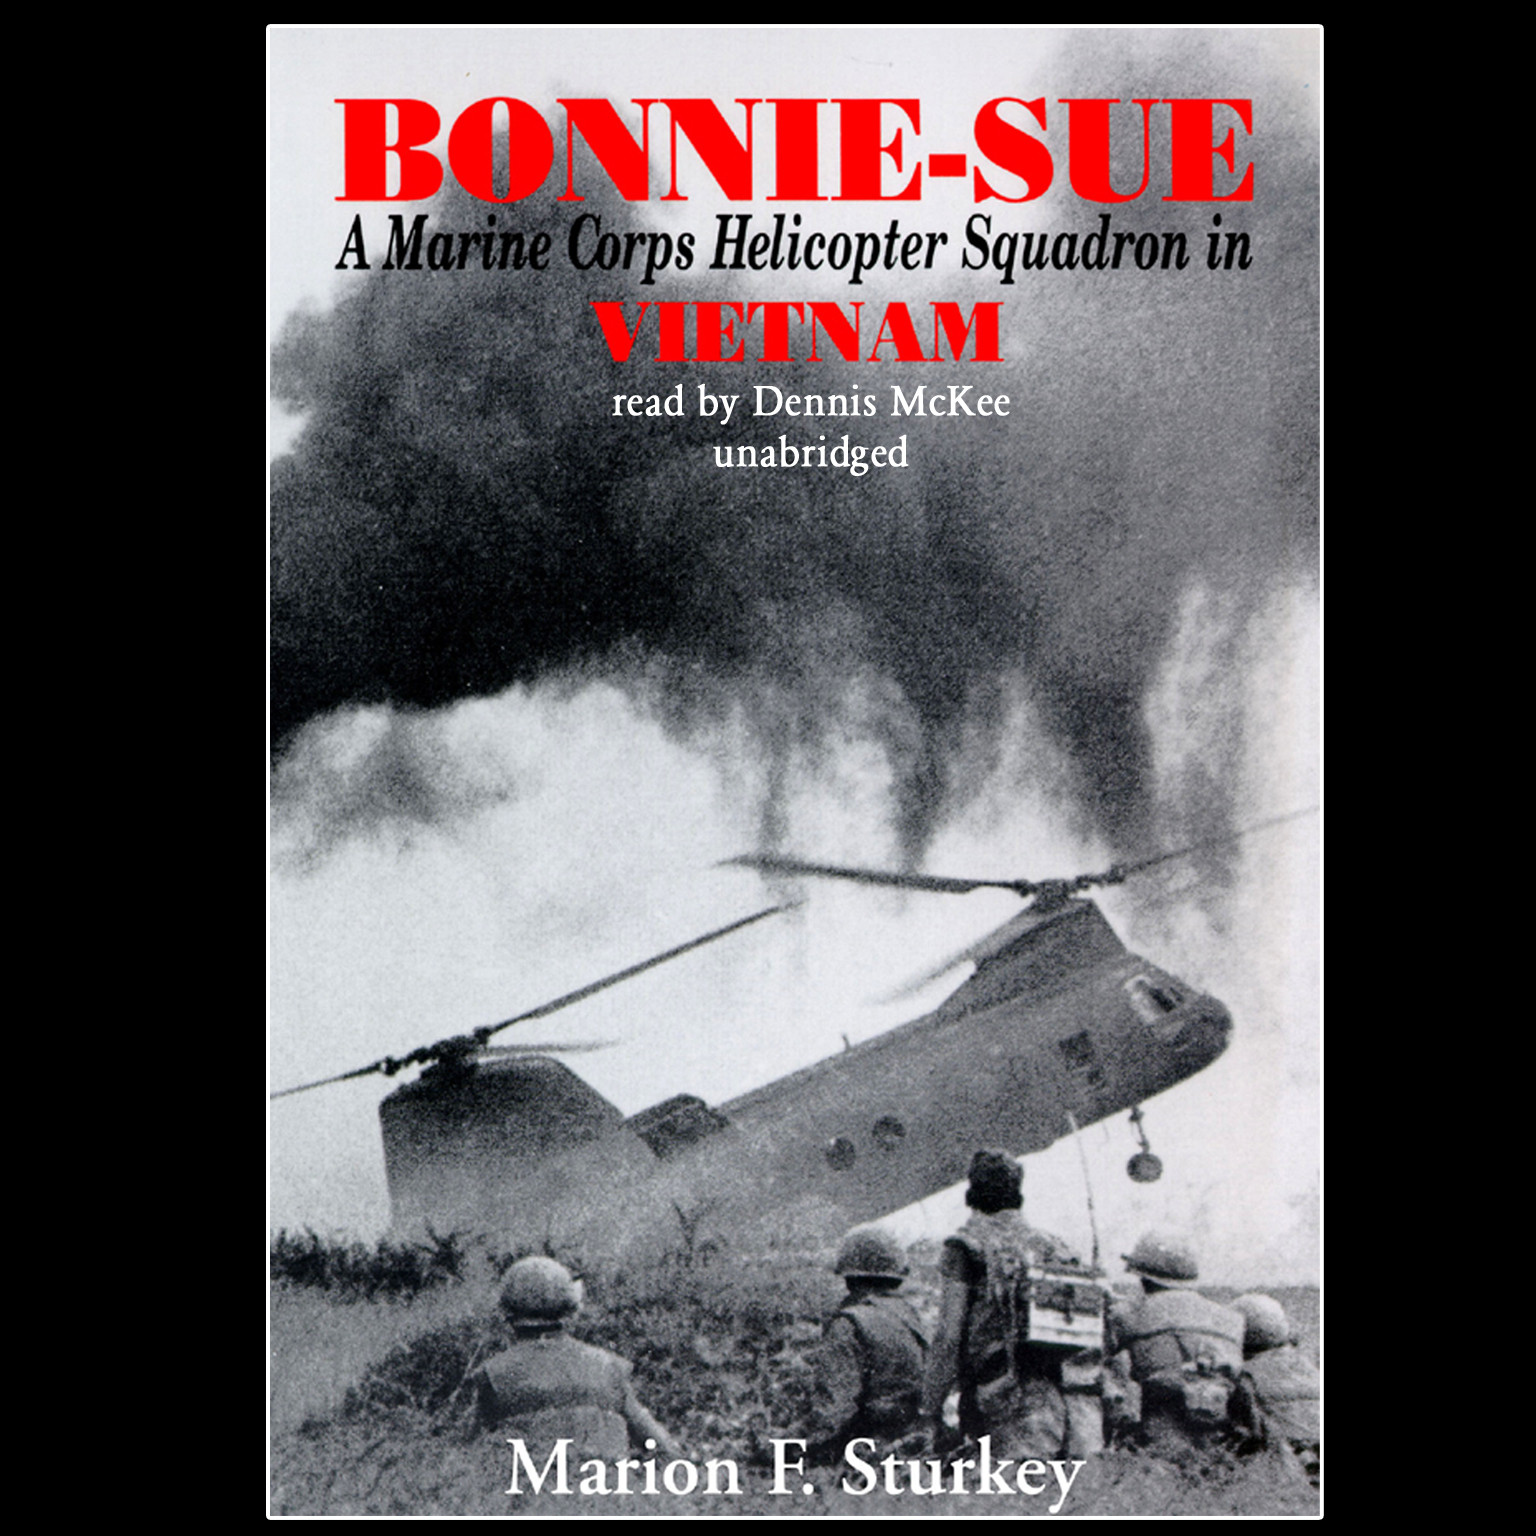 Printable Bonnie-Sue: A Marine Corps Helicopter Squadron in Vietnam Audiobook Cover Art